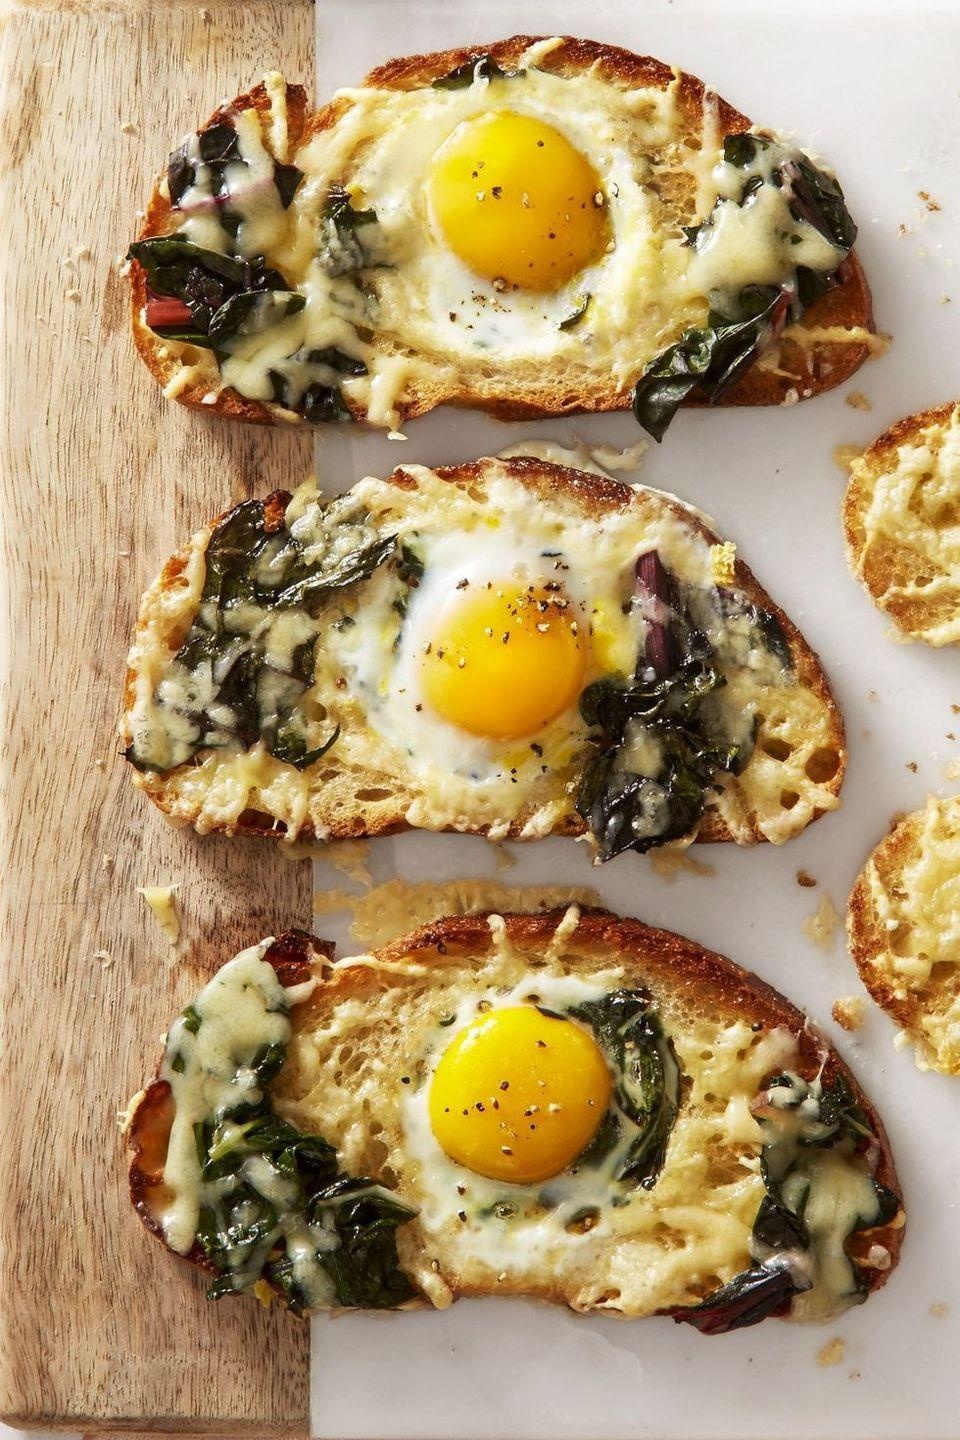 "<p>We've never considered eggs to be beautiful ... until now. These healthy, filling, and insanely attractive toasts will make your brunch spread look elegant as can be. </p><p><em><a href=""https://www.goodhousekeeping.com/food-recipes/a43666/chard-gruyere-eggs-in-the-hole-recipe/"" rel=""nofollow noopener"" target=""_blank"" data-ylk=""slk:Get the recipe for Chard and Gruyère Eggs in the Hole »"" class=""link rapid-noclick-resp"">Get the recipe for Chard and Gruyère Eggs in the Hole »</a></em></p><p><strong>RELATED:</strong> <a href=""https://www.goodhousekeeping.com/food-recipes/easy/g428/easy-egg-recipes/"" rel=""nofollow noopener"" target=""_blank"" data-ylk=""slk:45+ Easy Egg Recipes for Your Best Brunch Ever"" class=""link rapid-noclick-resp"">45+ Easy Egg Recipes for Your Best Brunch Ever</a></p>"